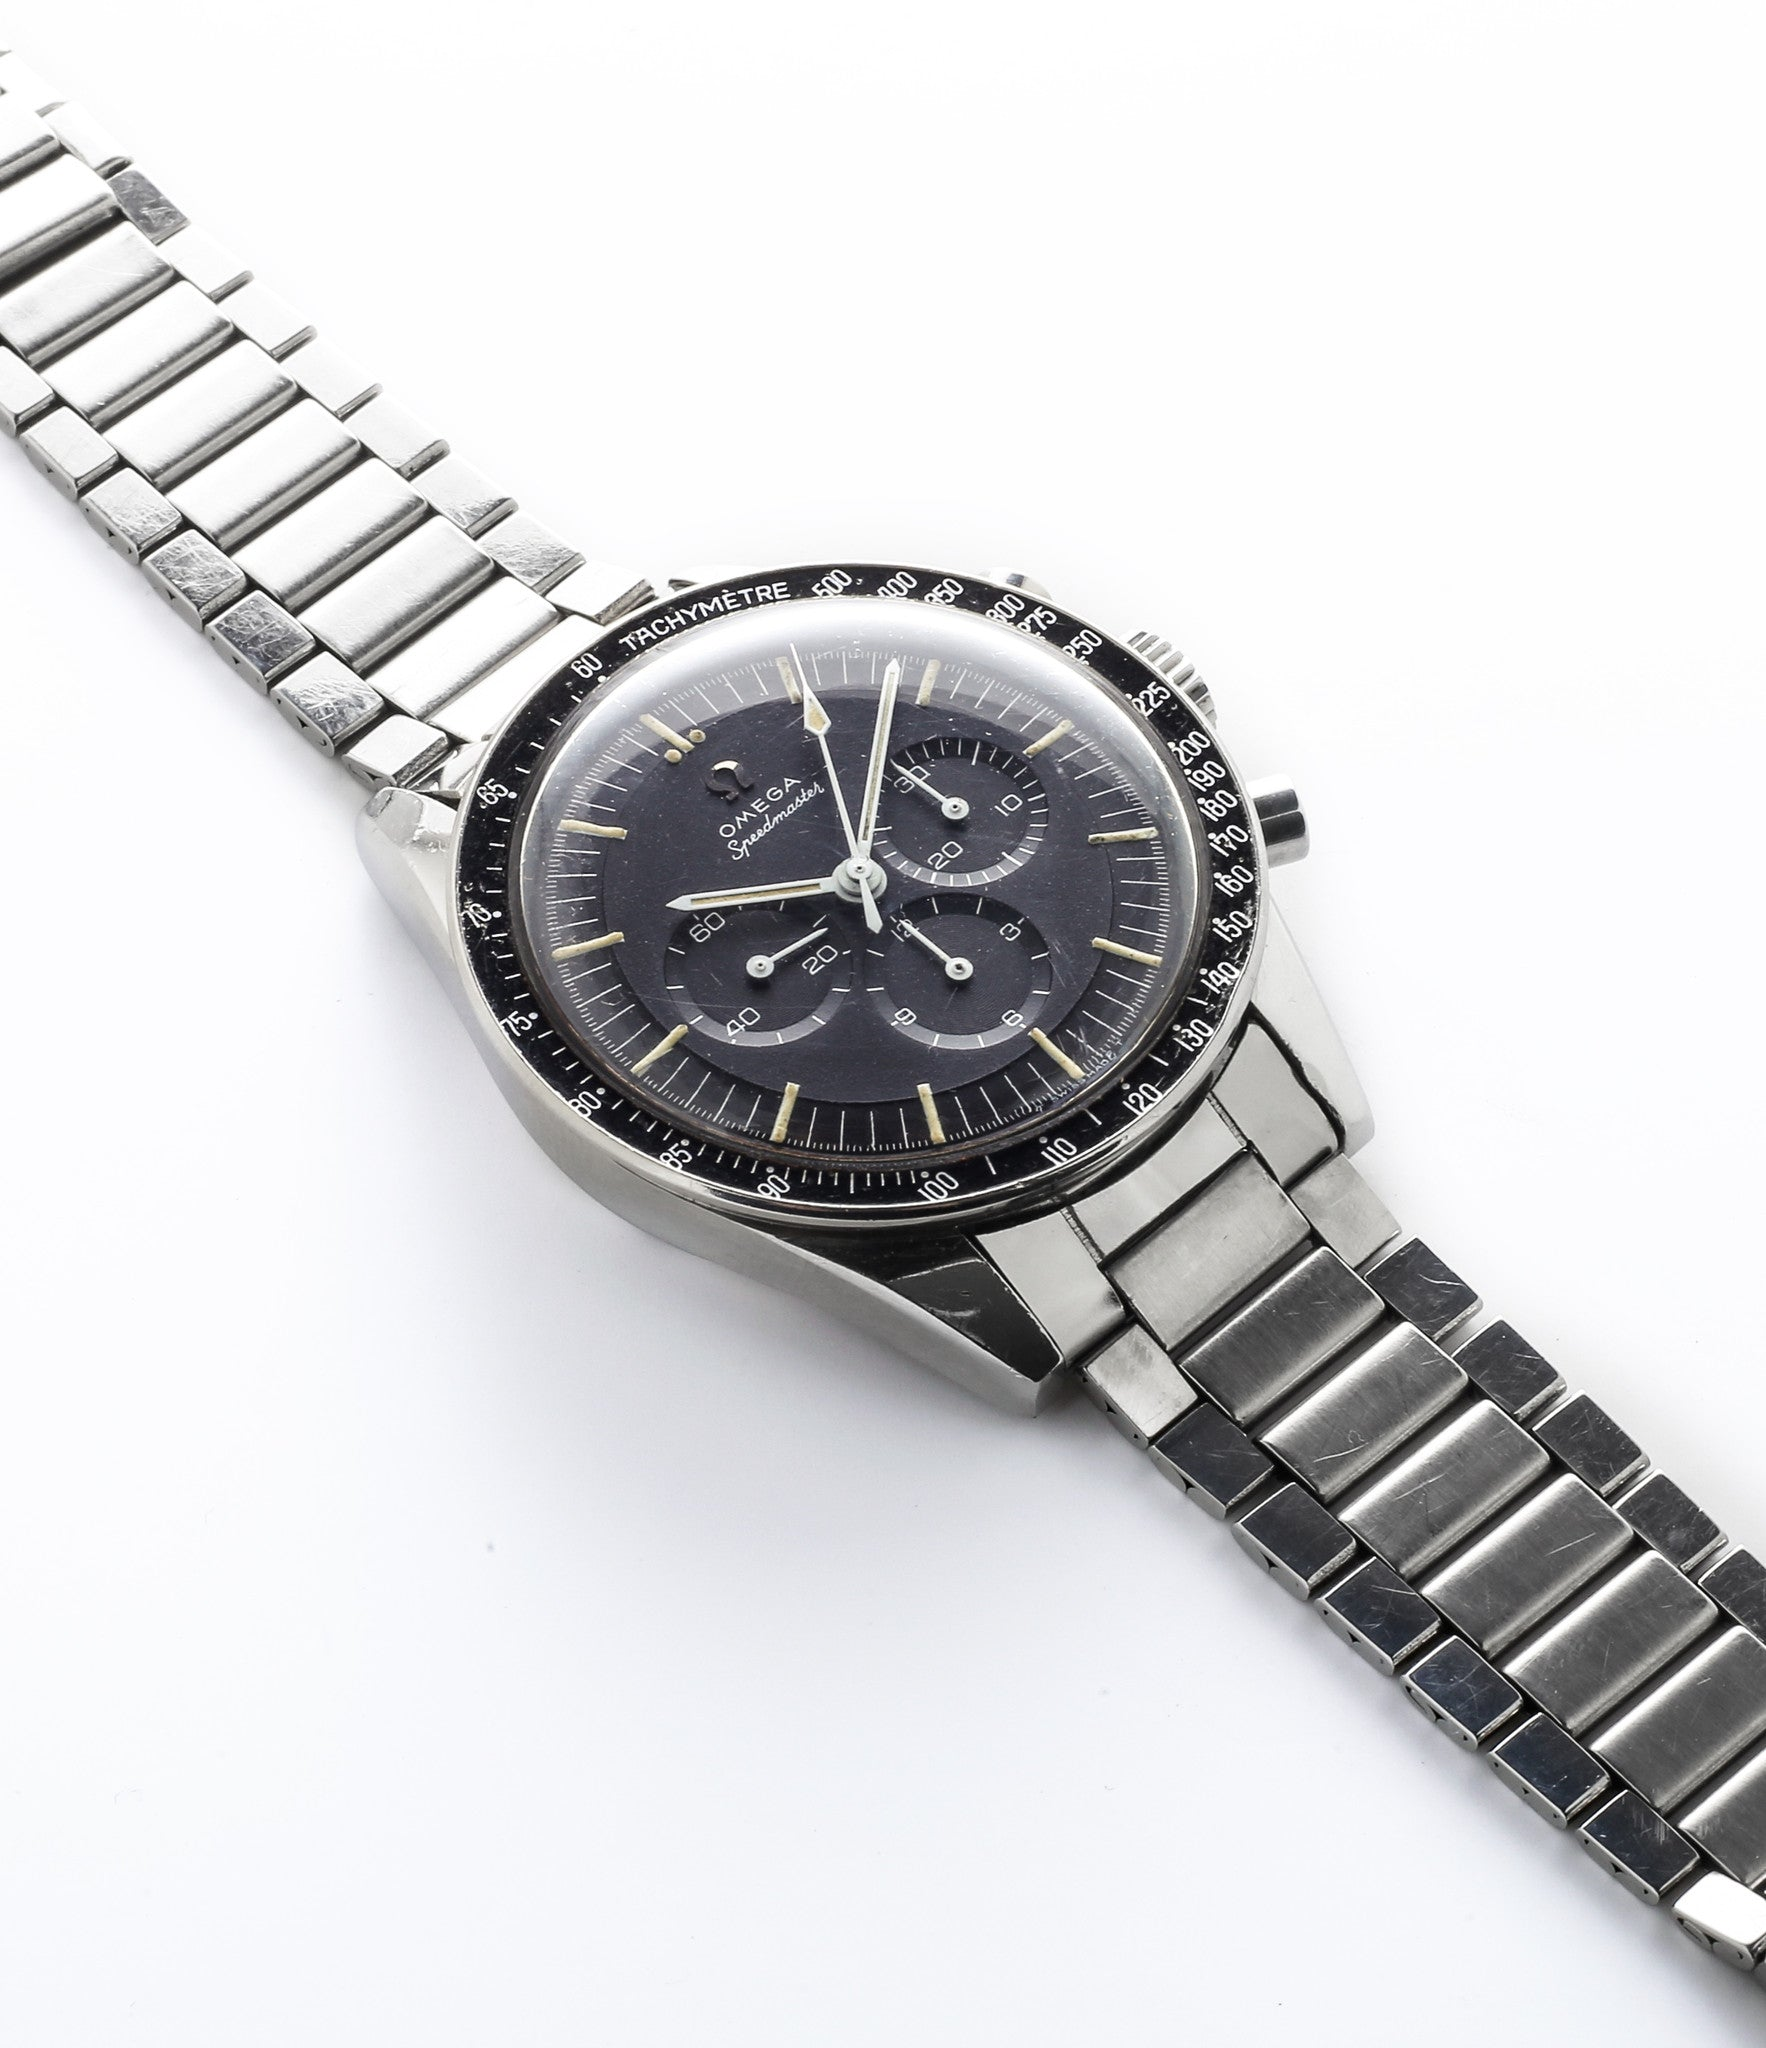 buy vintage Omega Speedmaster Pre-Professional Ed White ST 105.003-65 steel Cal. 321 manual-winding column-wheel chronograph watch with archive extracts for sale at WATCH XCHANGE London